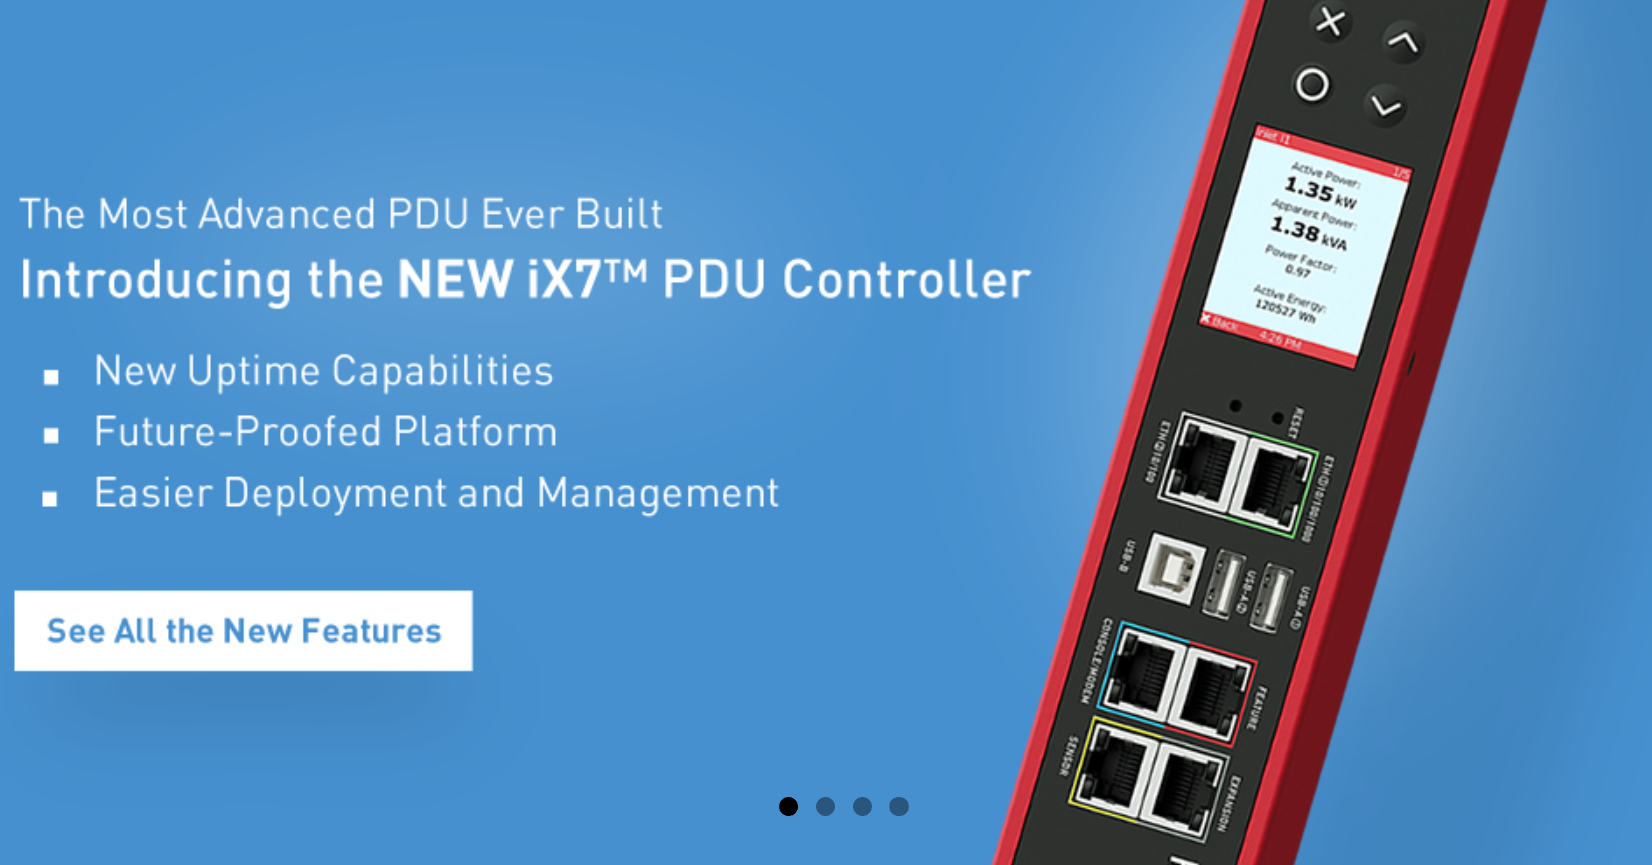 Worlds most powerful  PDU processor